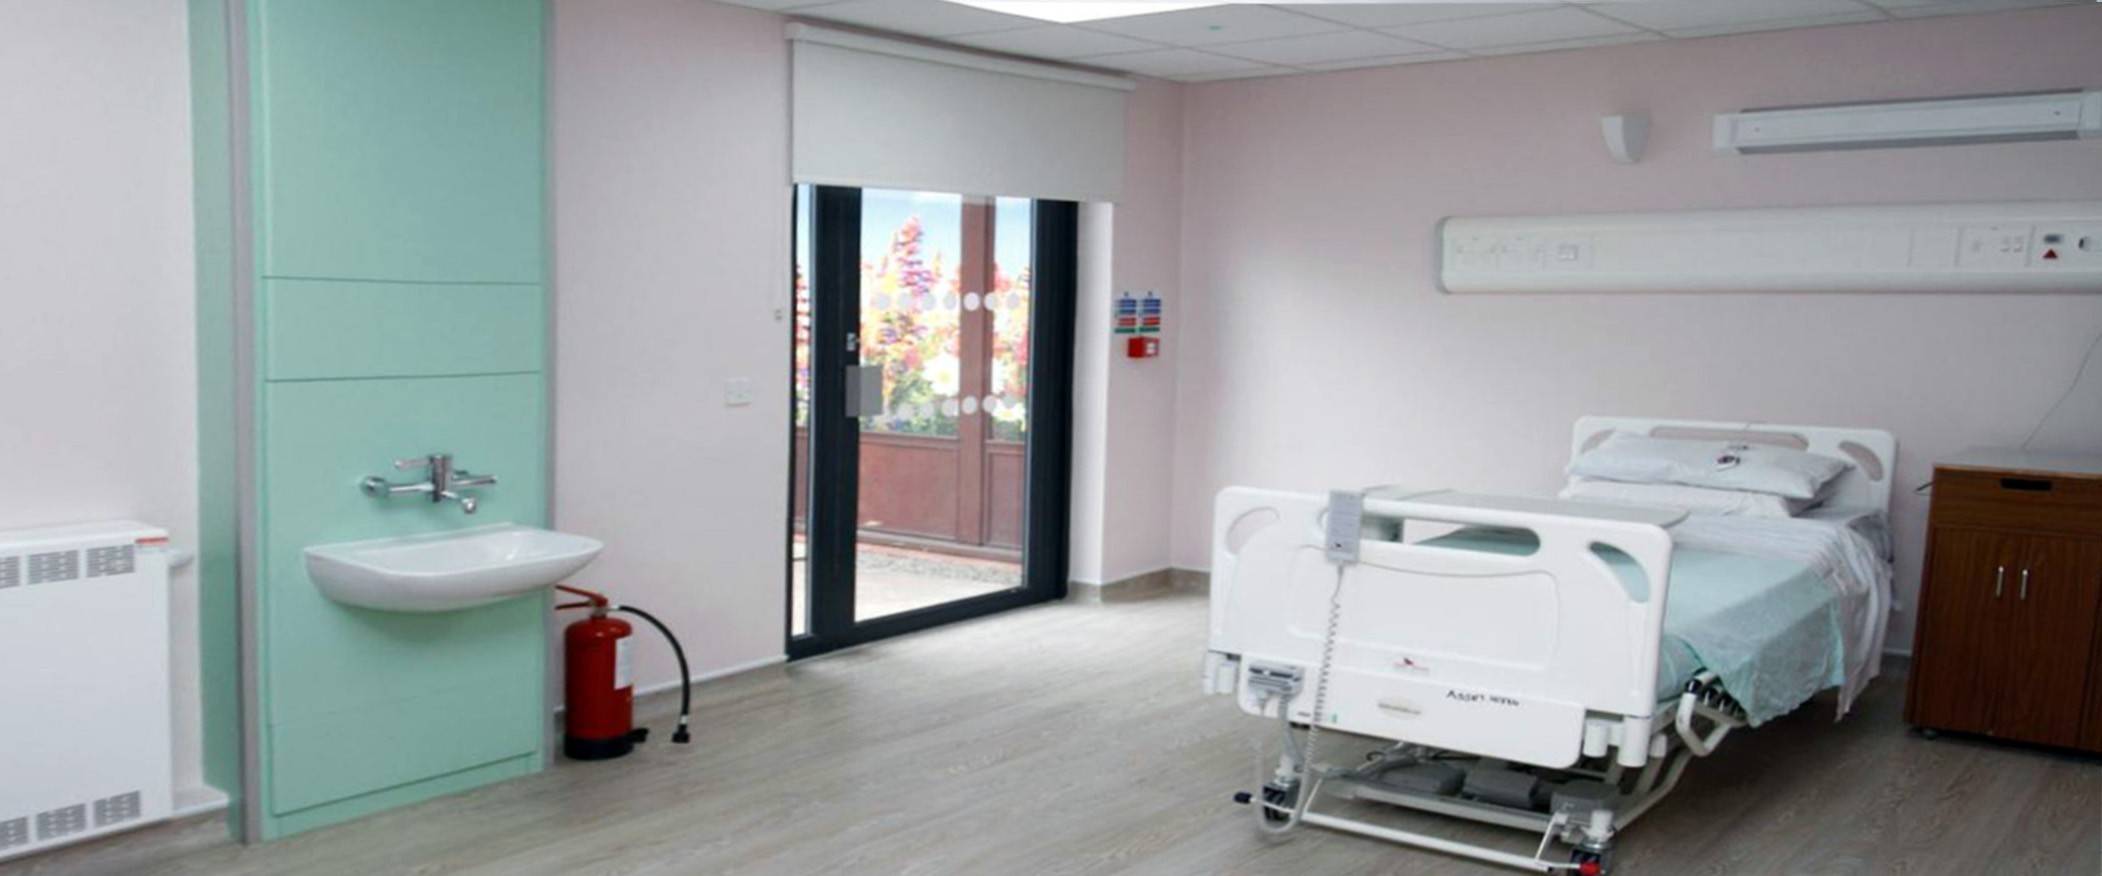 Palliative Care Suite, Llanidloes War Memorial Hospital